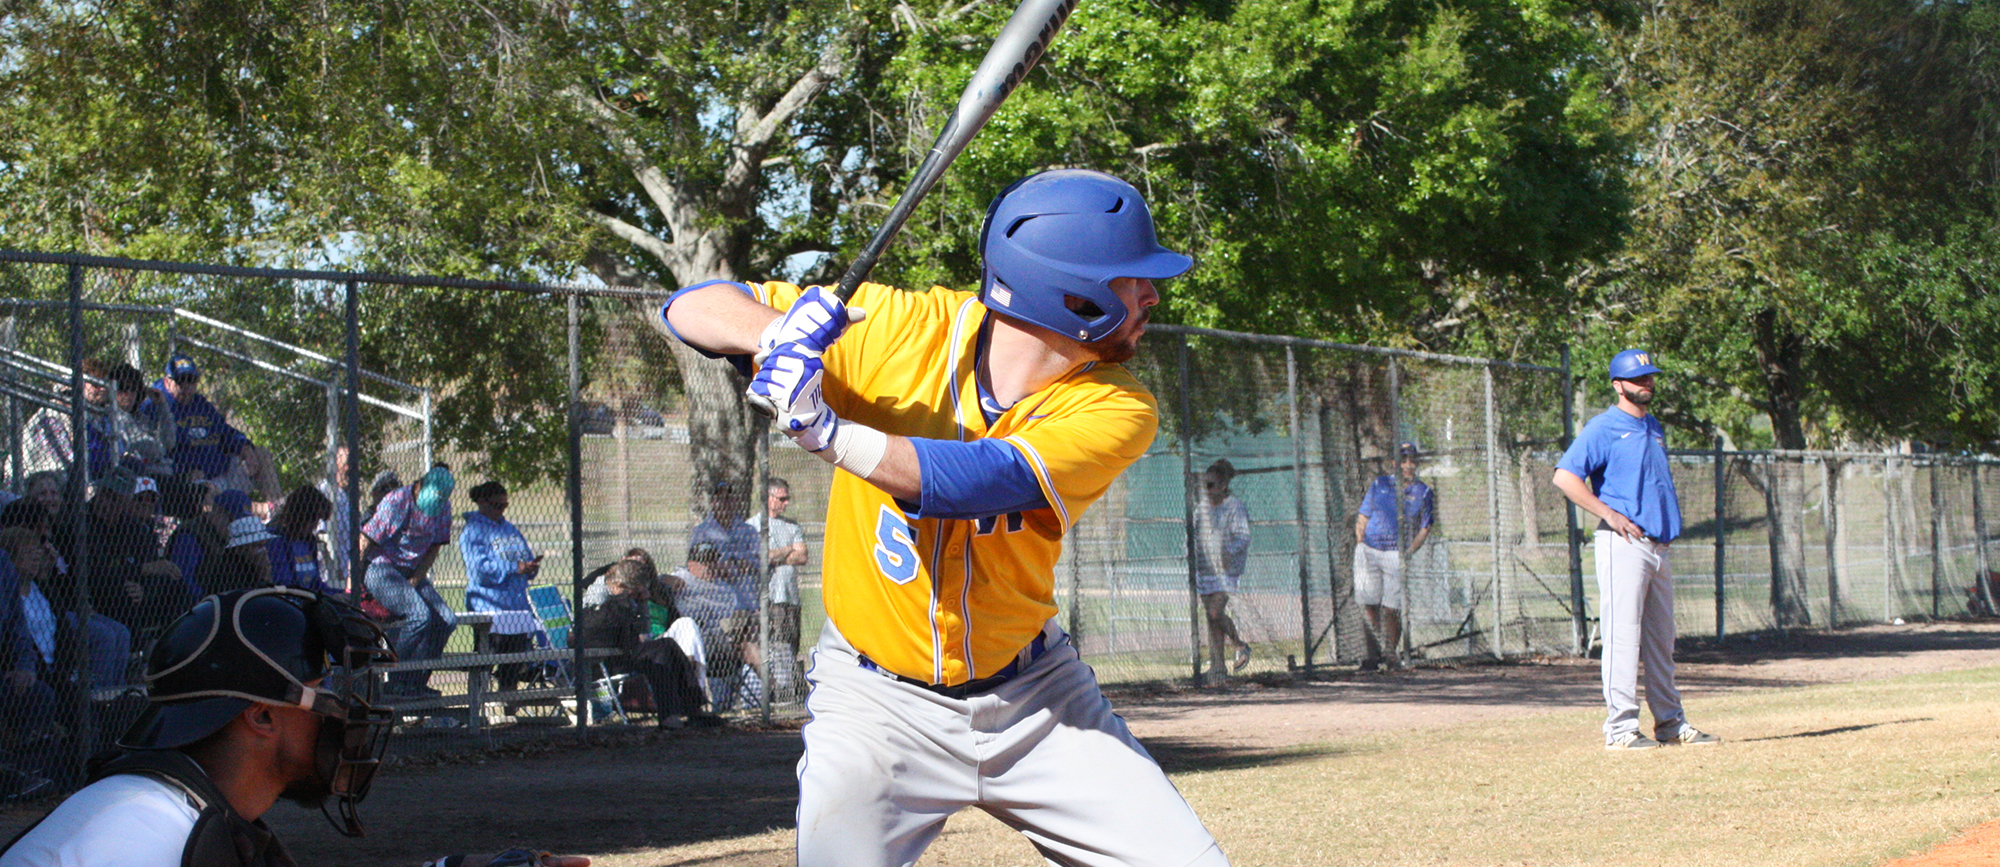 Senior Jared Rosenblatt went 4-for-5 with a walk, three RBI and five runs scored in Western New England's 22-7 win over Stockton in Winter Haven, Florida on Saturday.